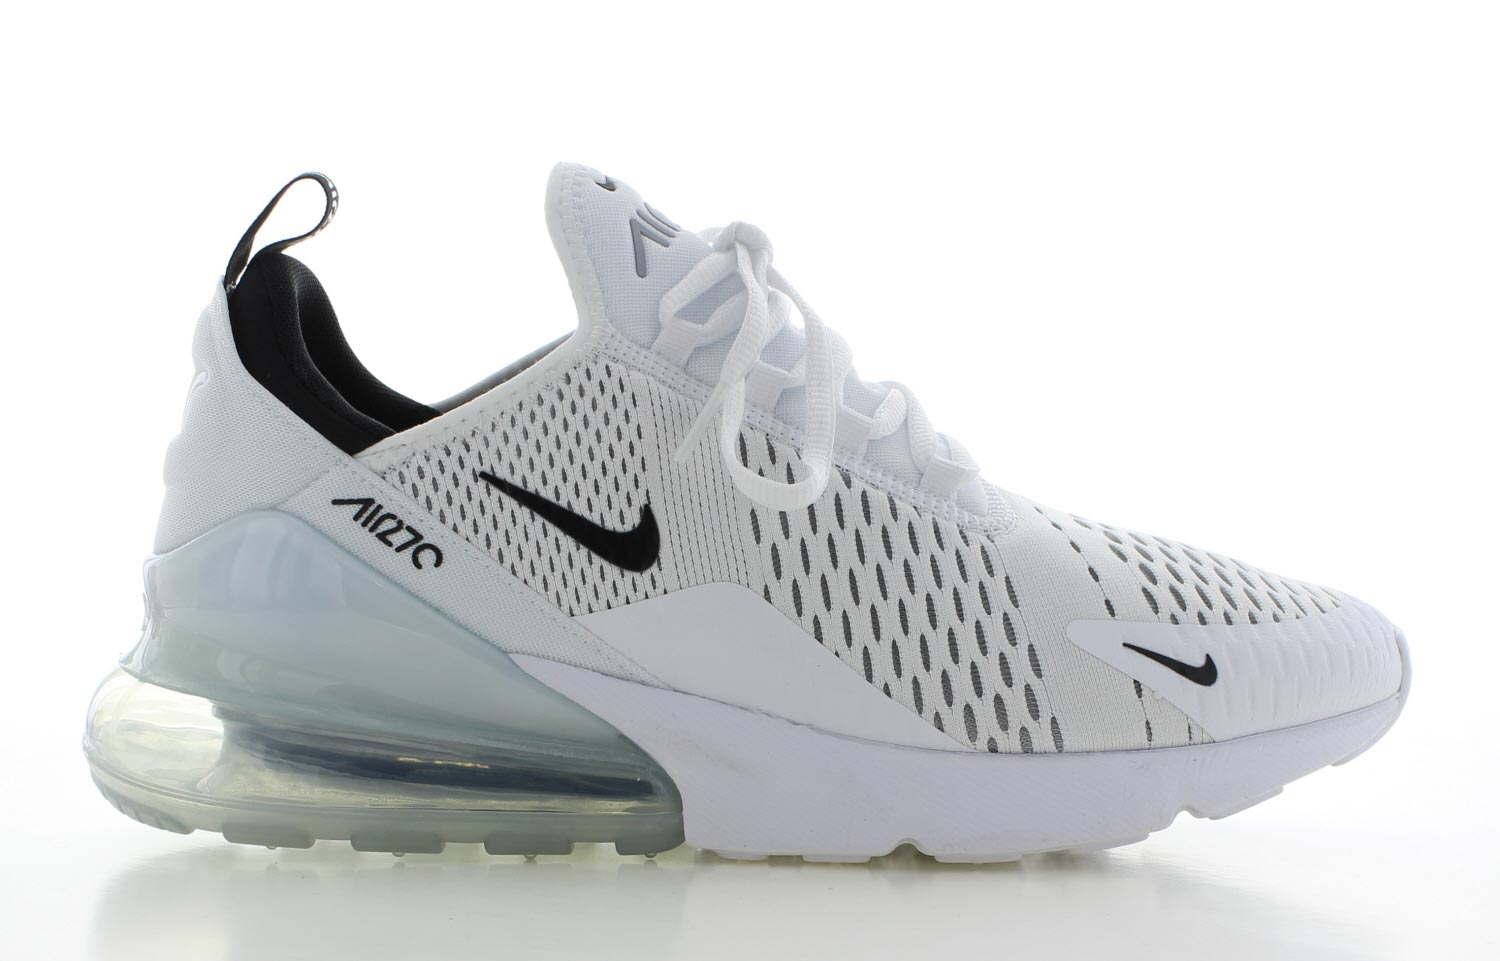 nike air max 270 wit zwart